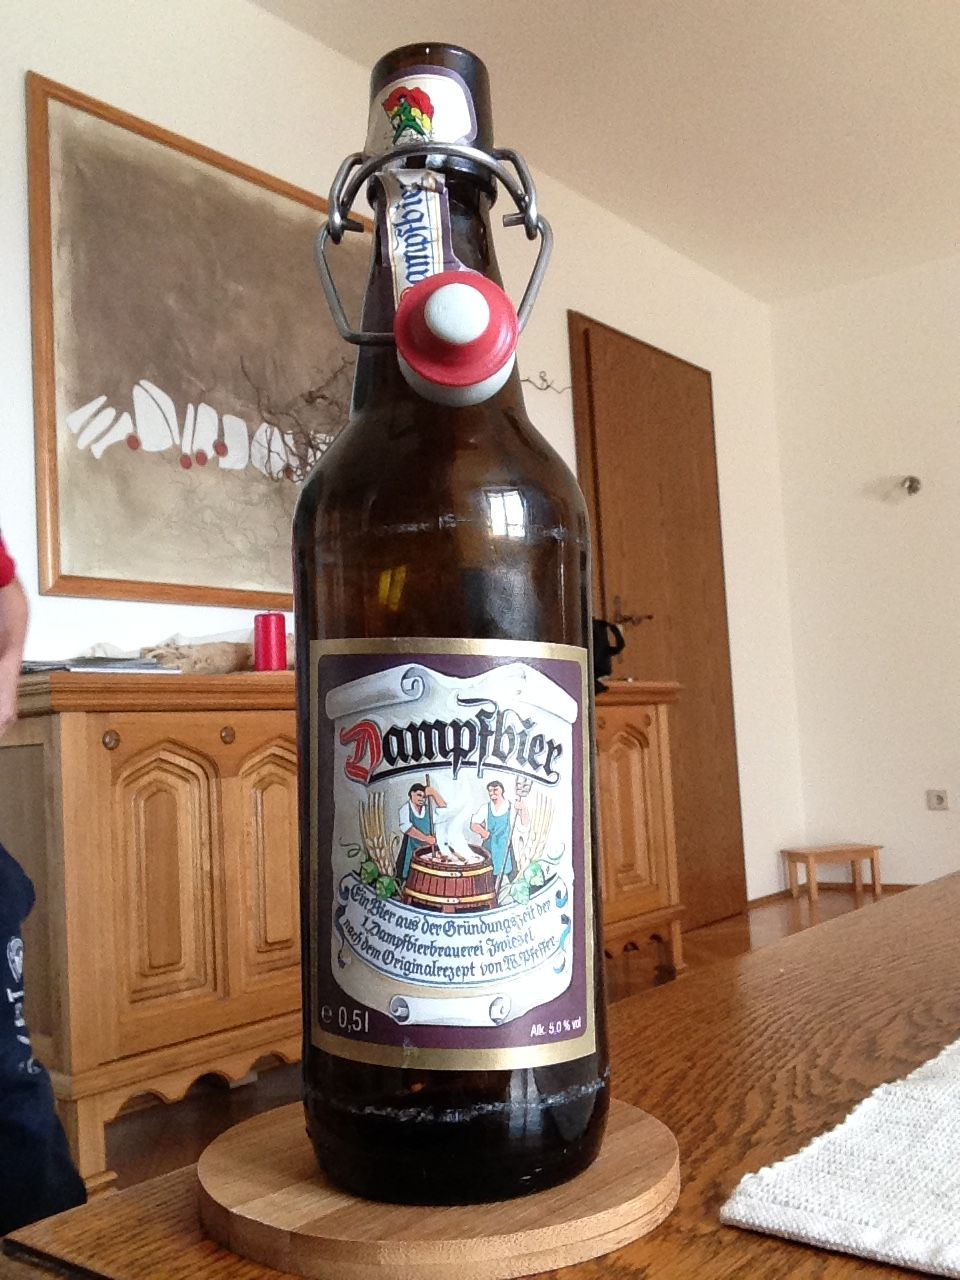 23 best Urlaubsbier images on Pinterest | Note, Beer bottle and Herbs